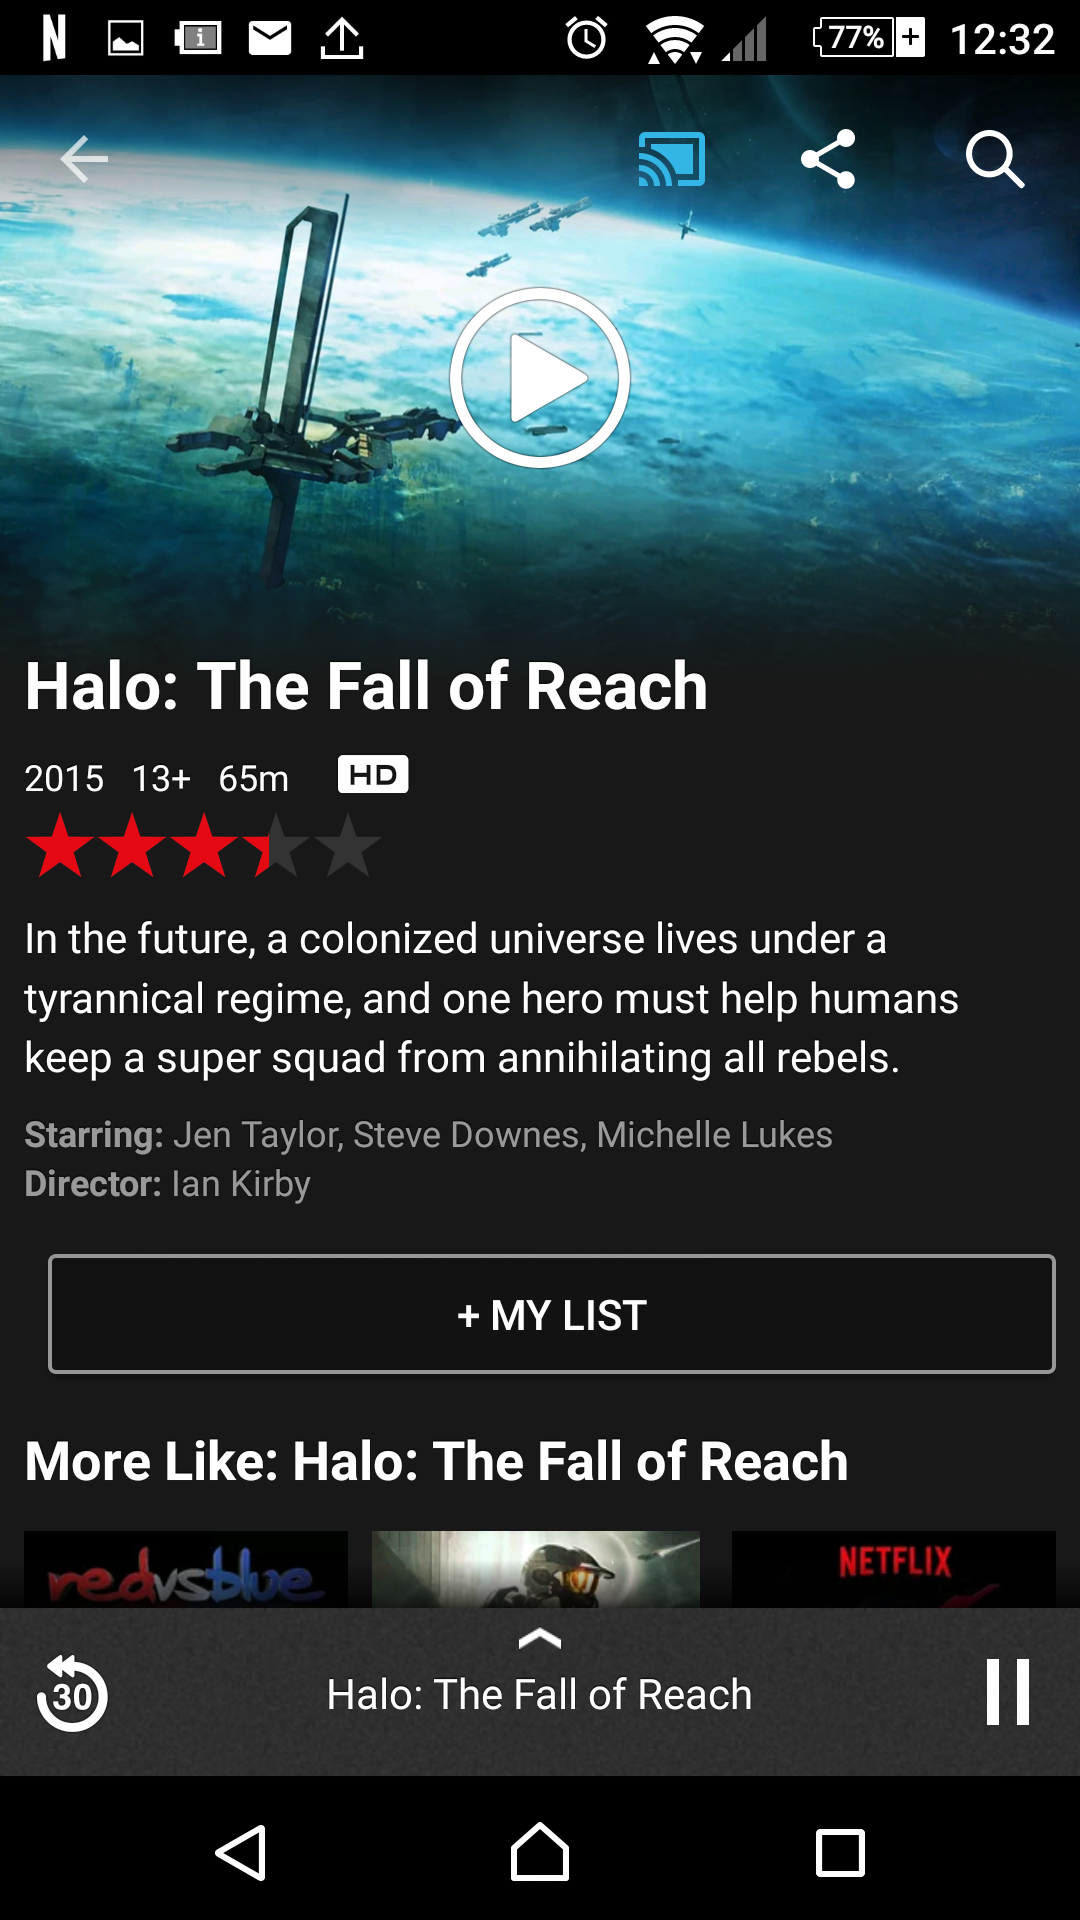 Netflix: Hallo: The fall of reach